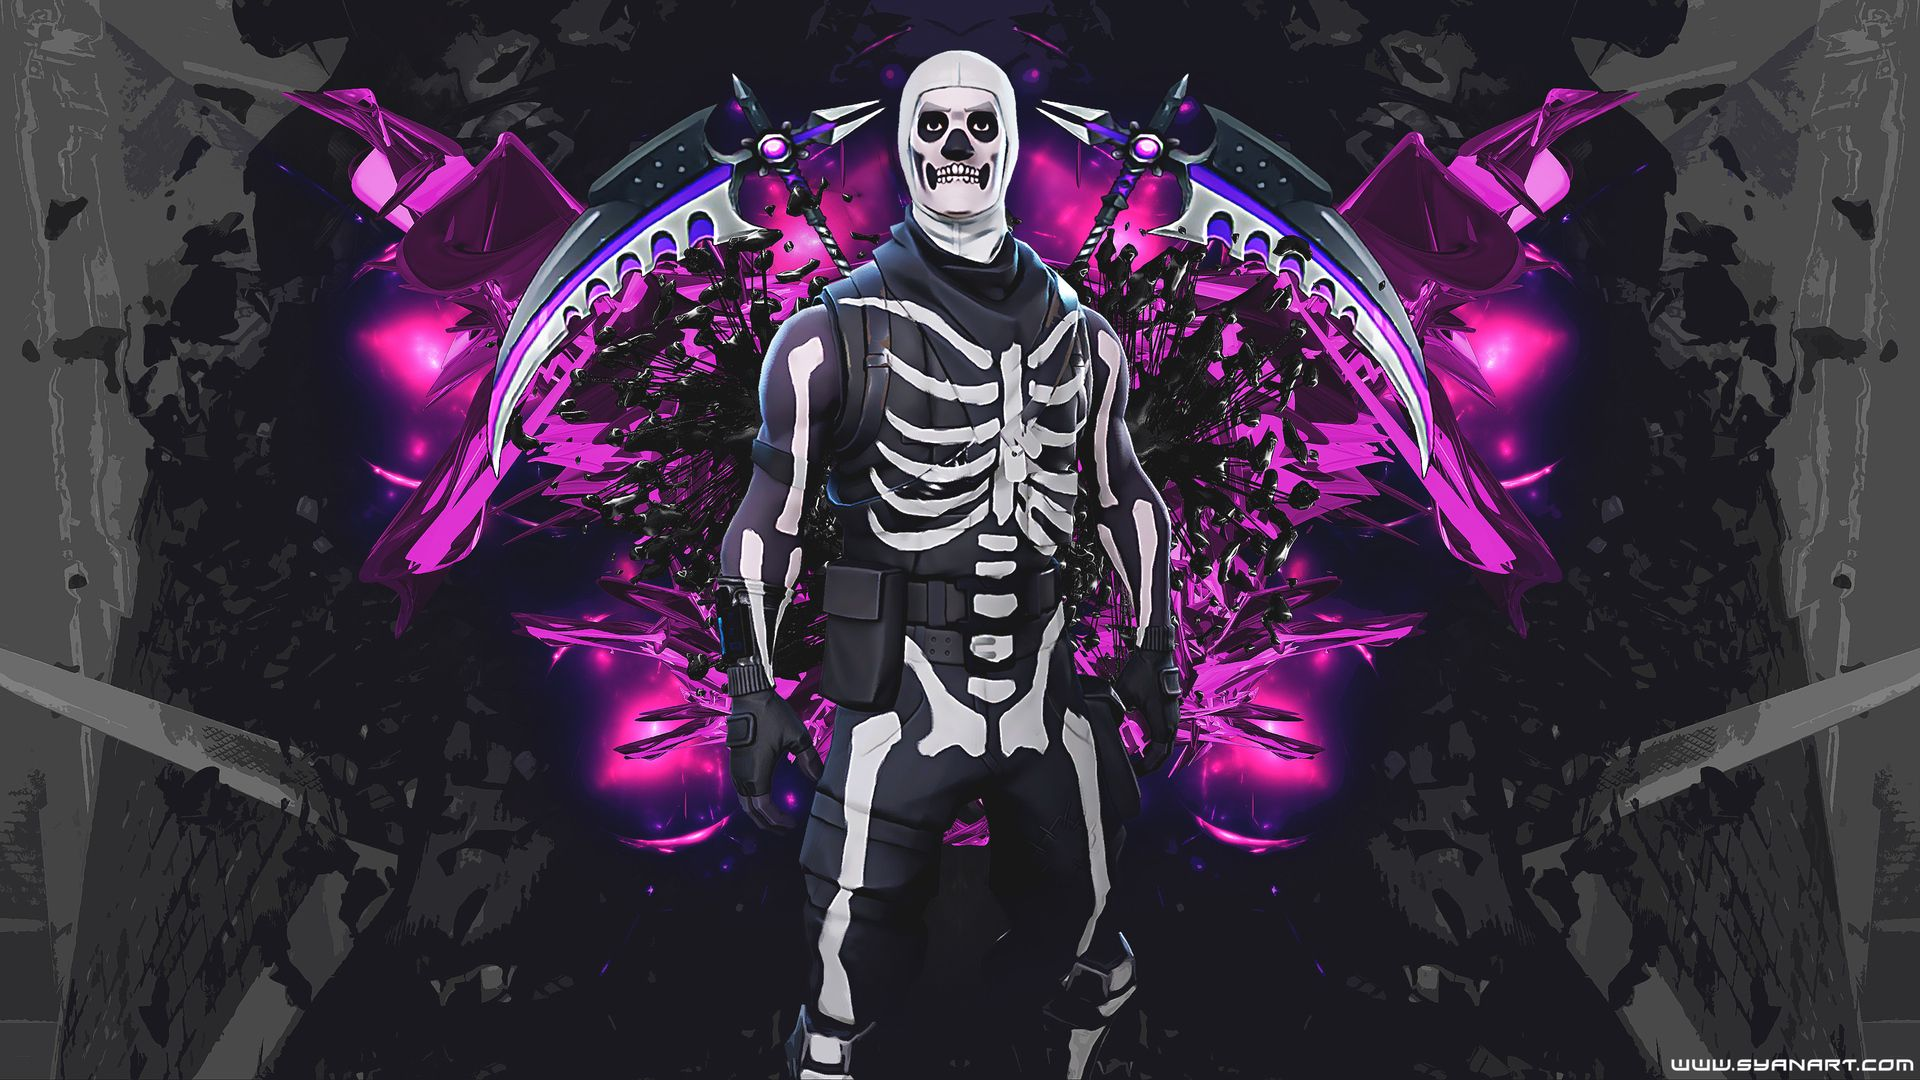 1920x1080 Hd Wallpaper Of Skull Trooper Fortnite Battle Royale Video Game Gaming Wallpapers Best Gaming Wallpapers Full Hd Desktop Wallpapers